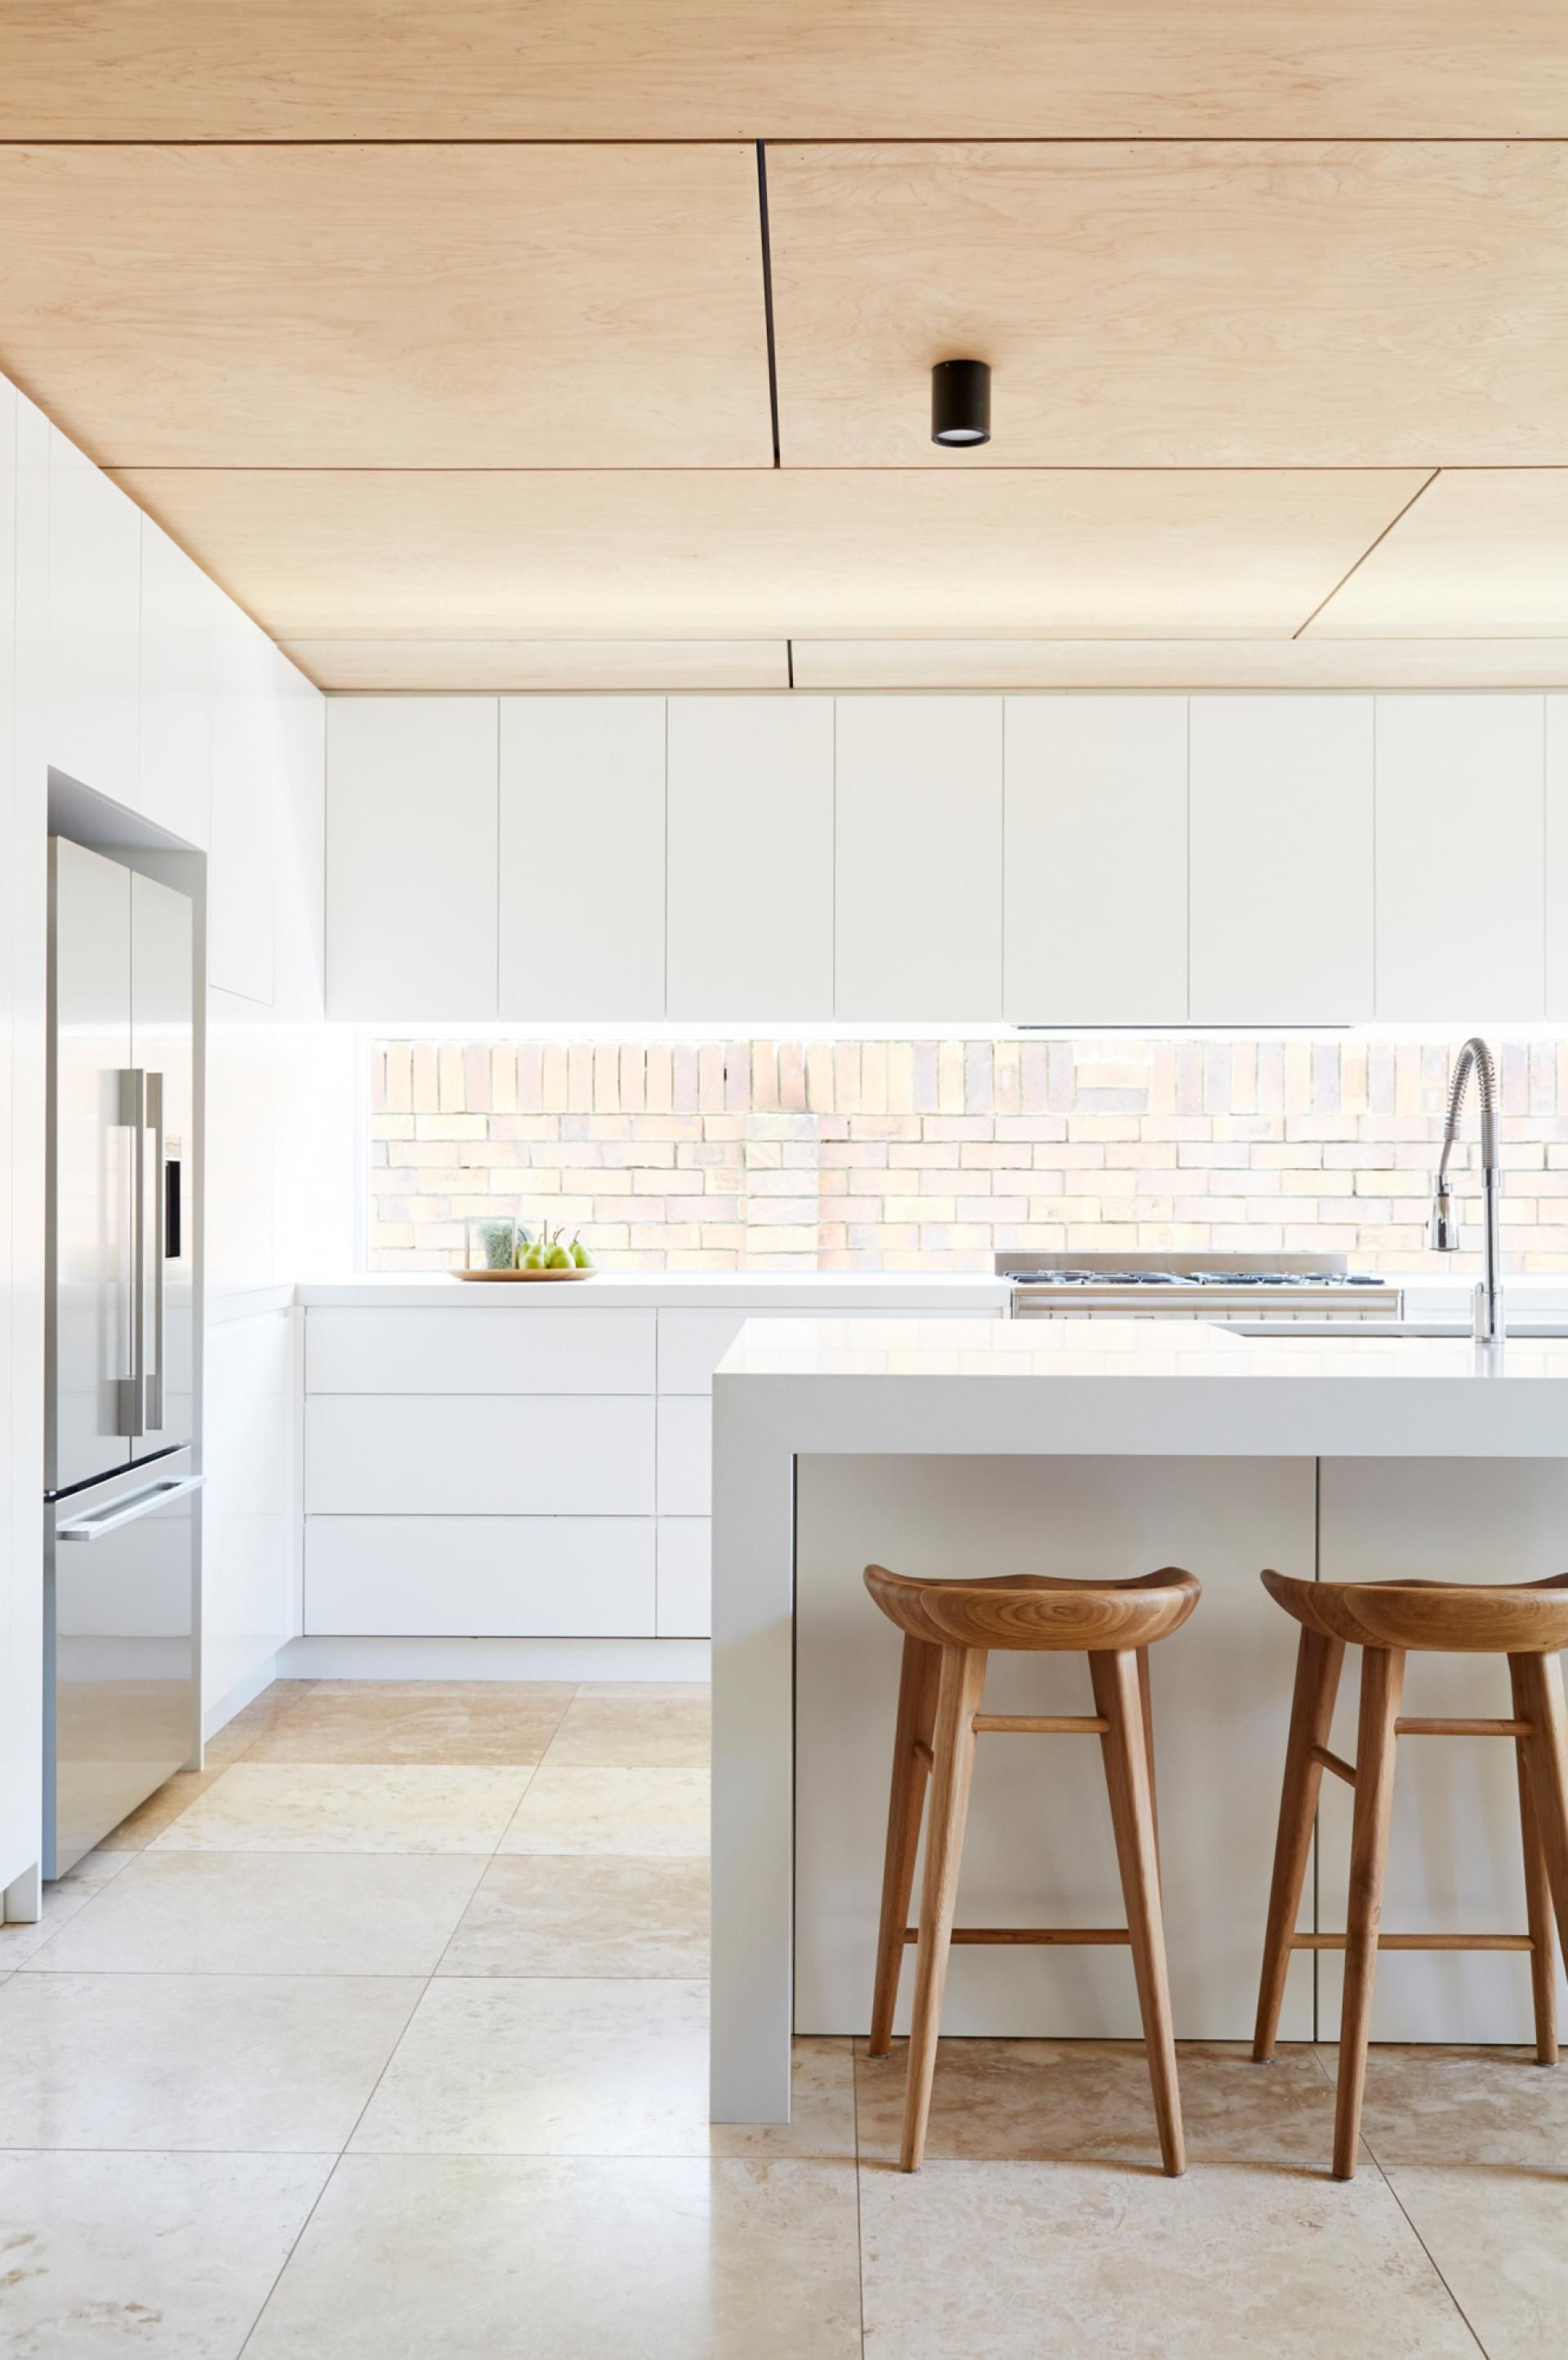 A dated brick house undergoes a timeless update graphy by